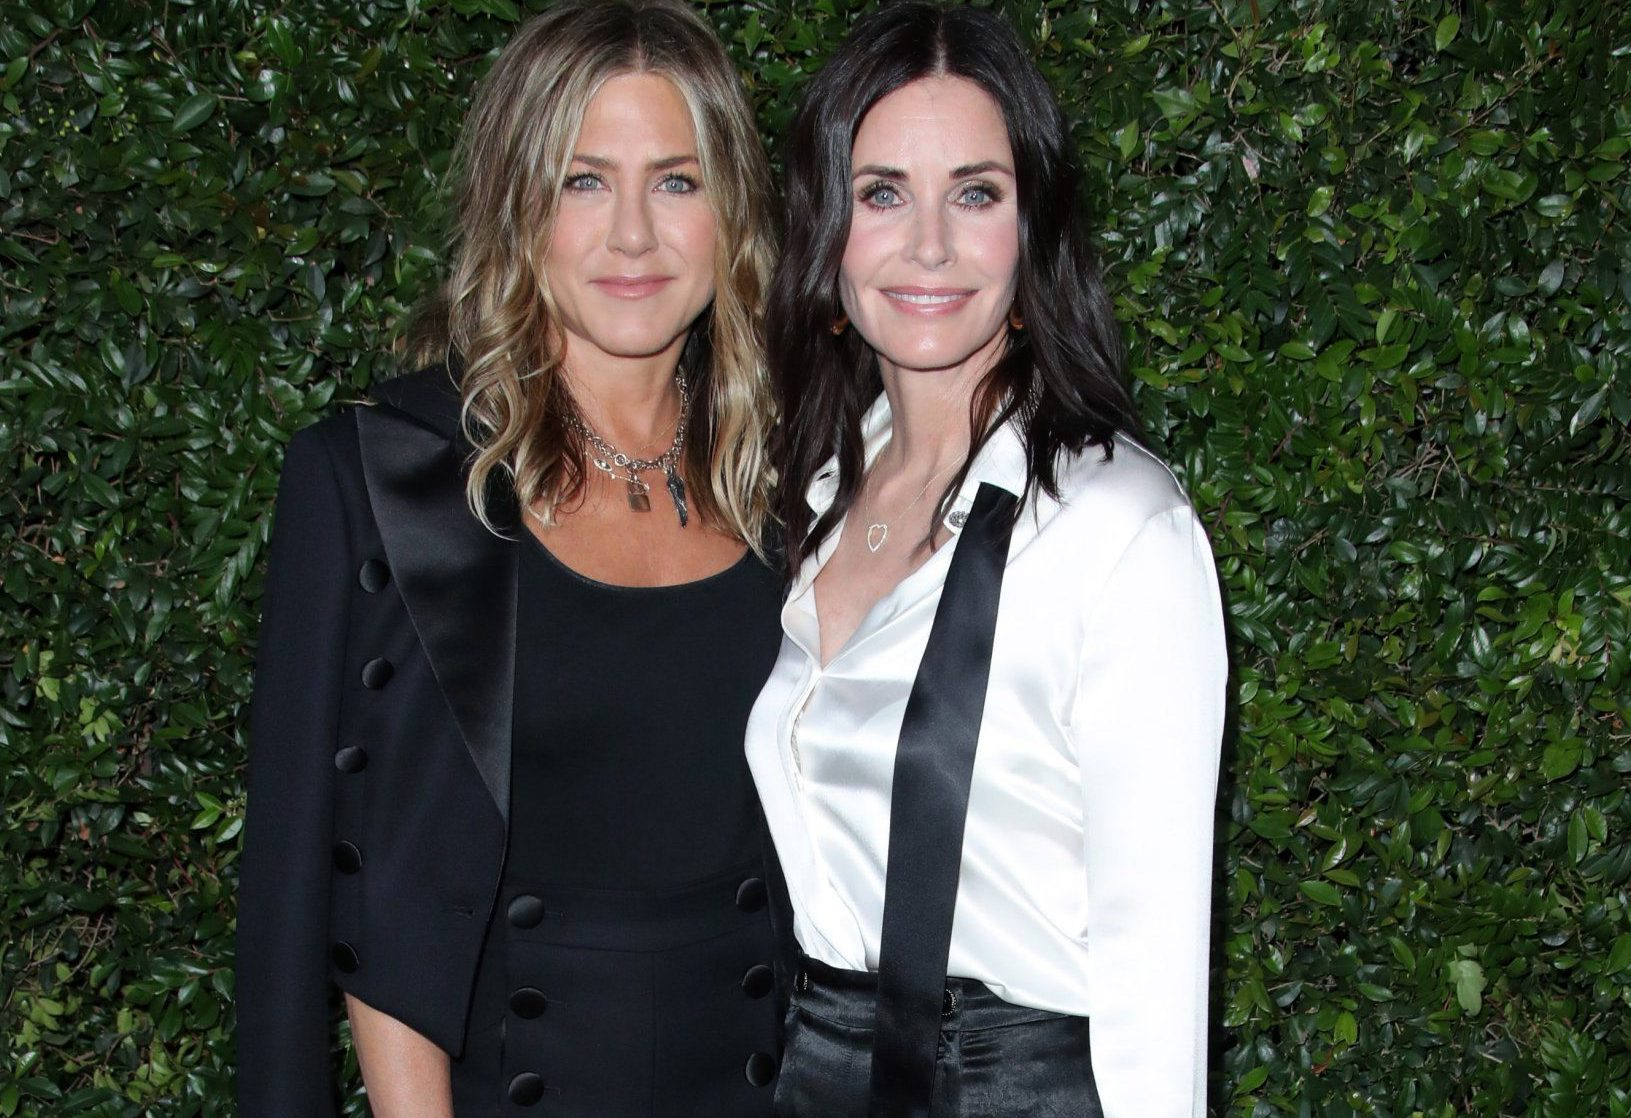 Jennifer Aniston and Courteney Cox are friendship goals at swanky Chanel party